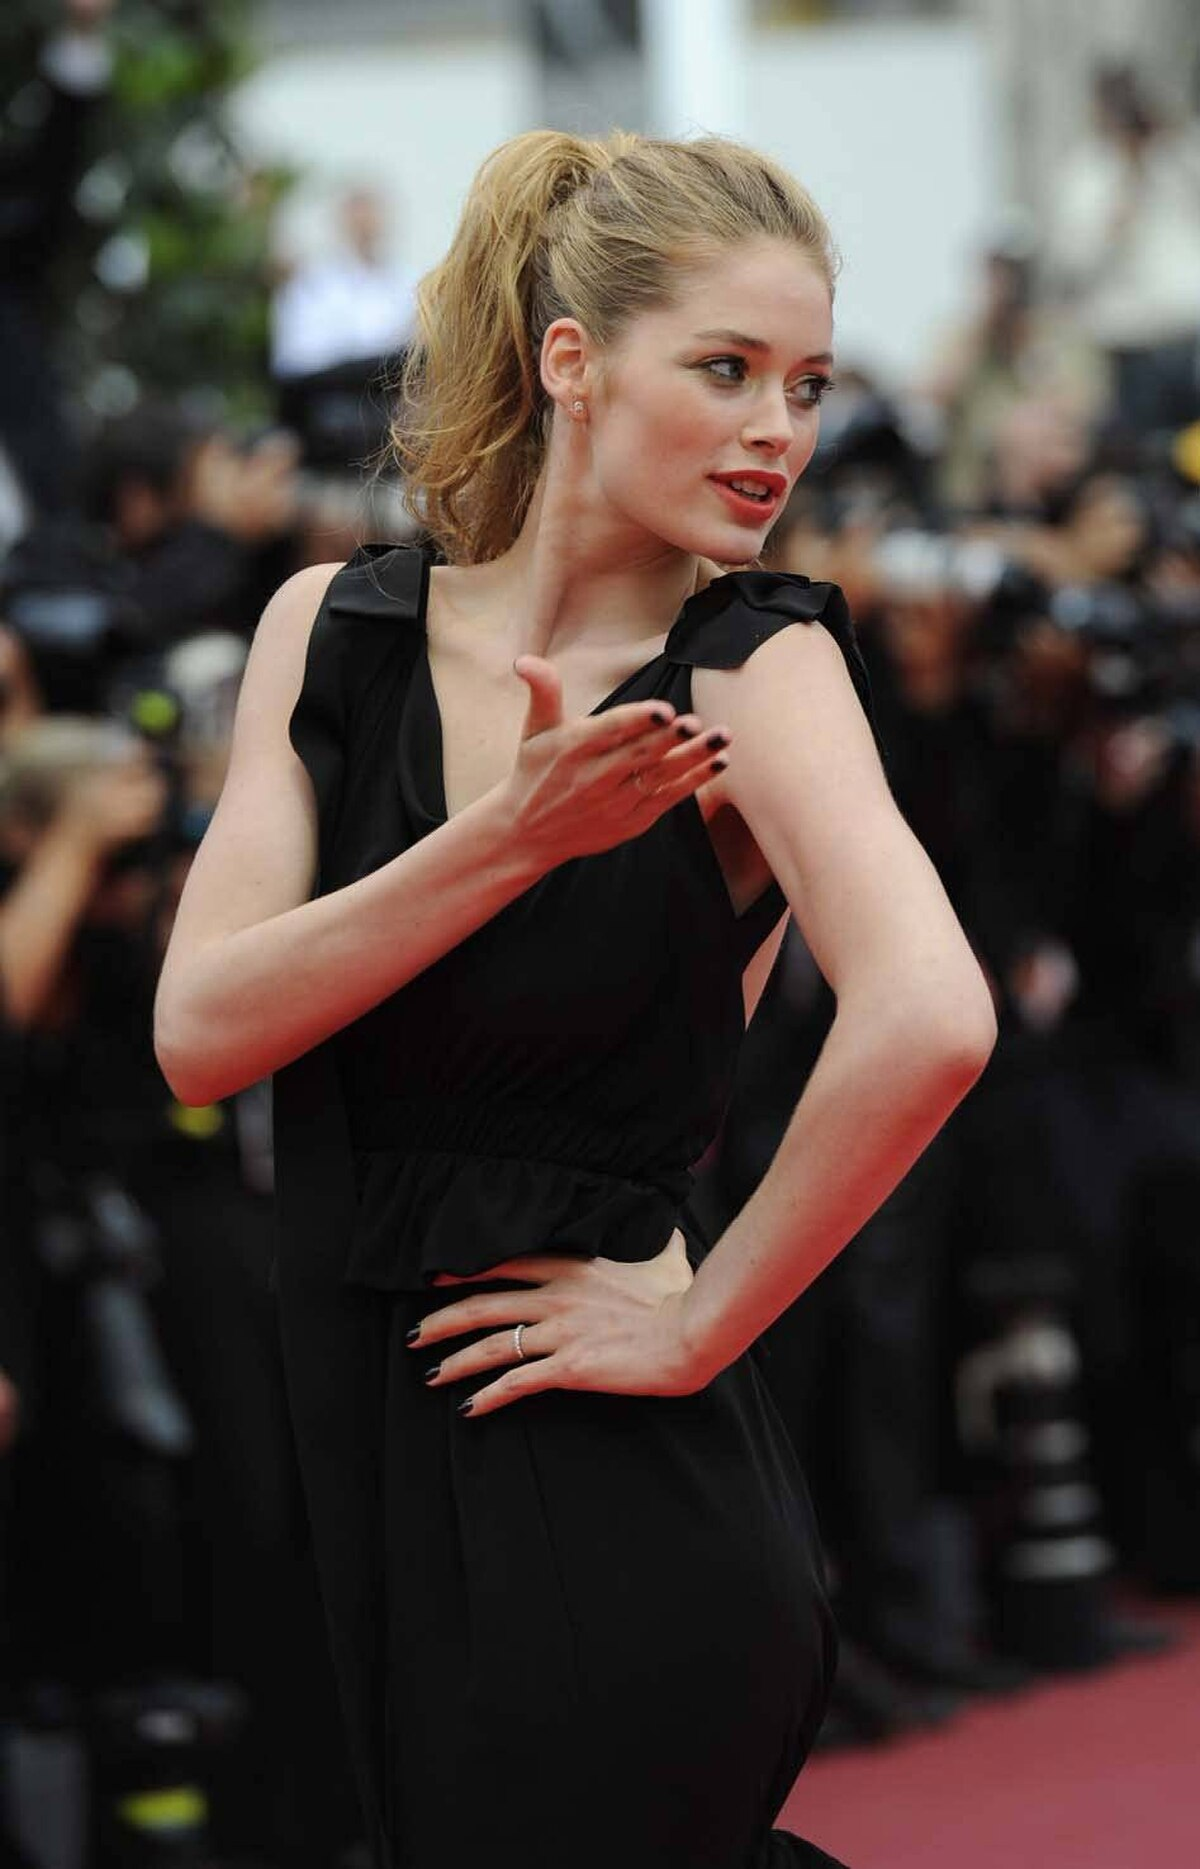 """Dutch model Dousten Kroes returns fire on the red carpet before the screening of """"La Conquete"""" at the Cannes Film Festival on Wednesday."""